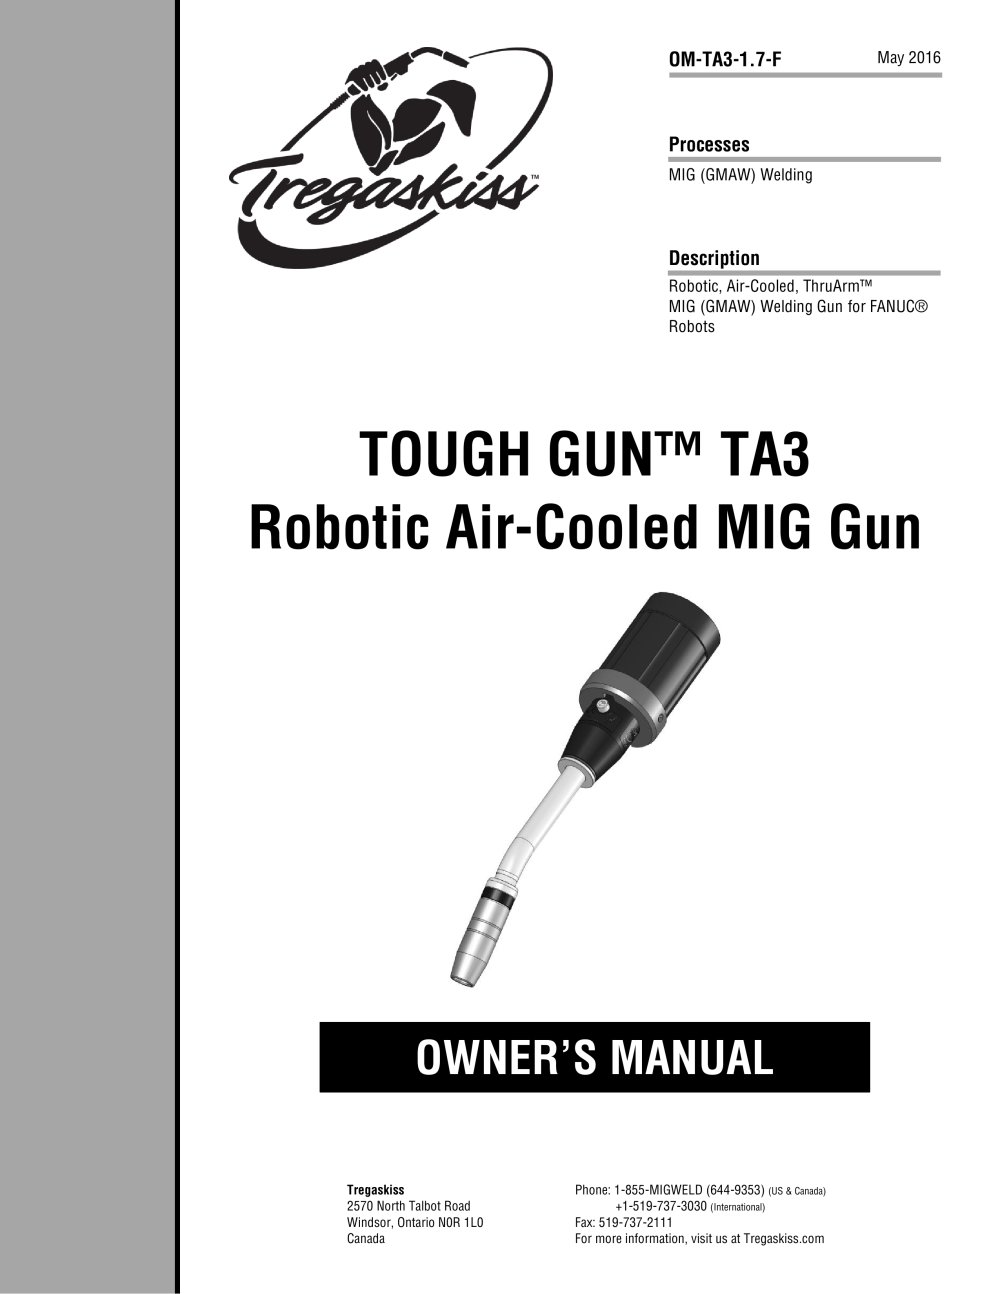 TOUGH GUN TA3 Robotic Air-Cooled MIG Guns for FANUC Robots Owner's Manual -  1 / 24 Pages